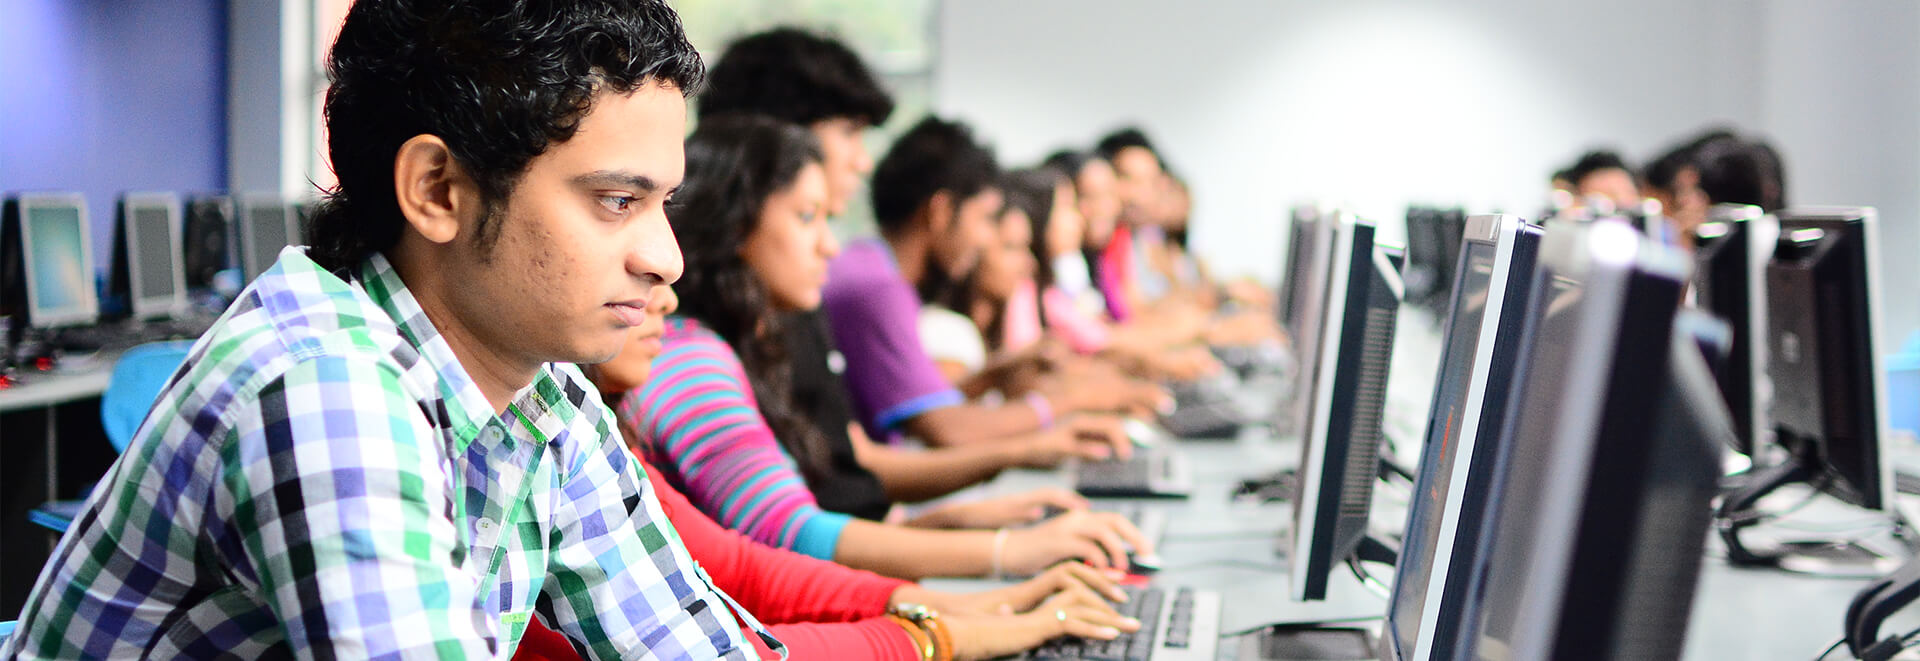 sliit-research-computing-faculty-slider